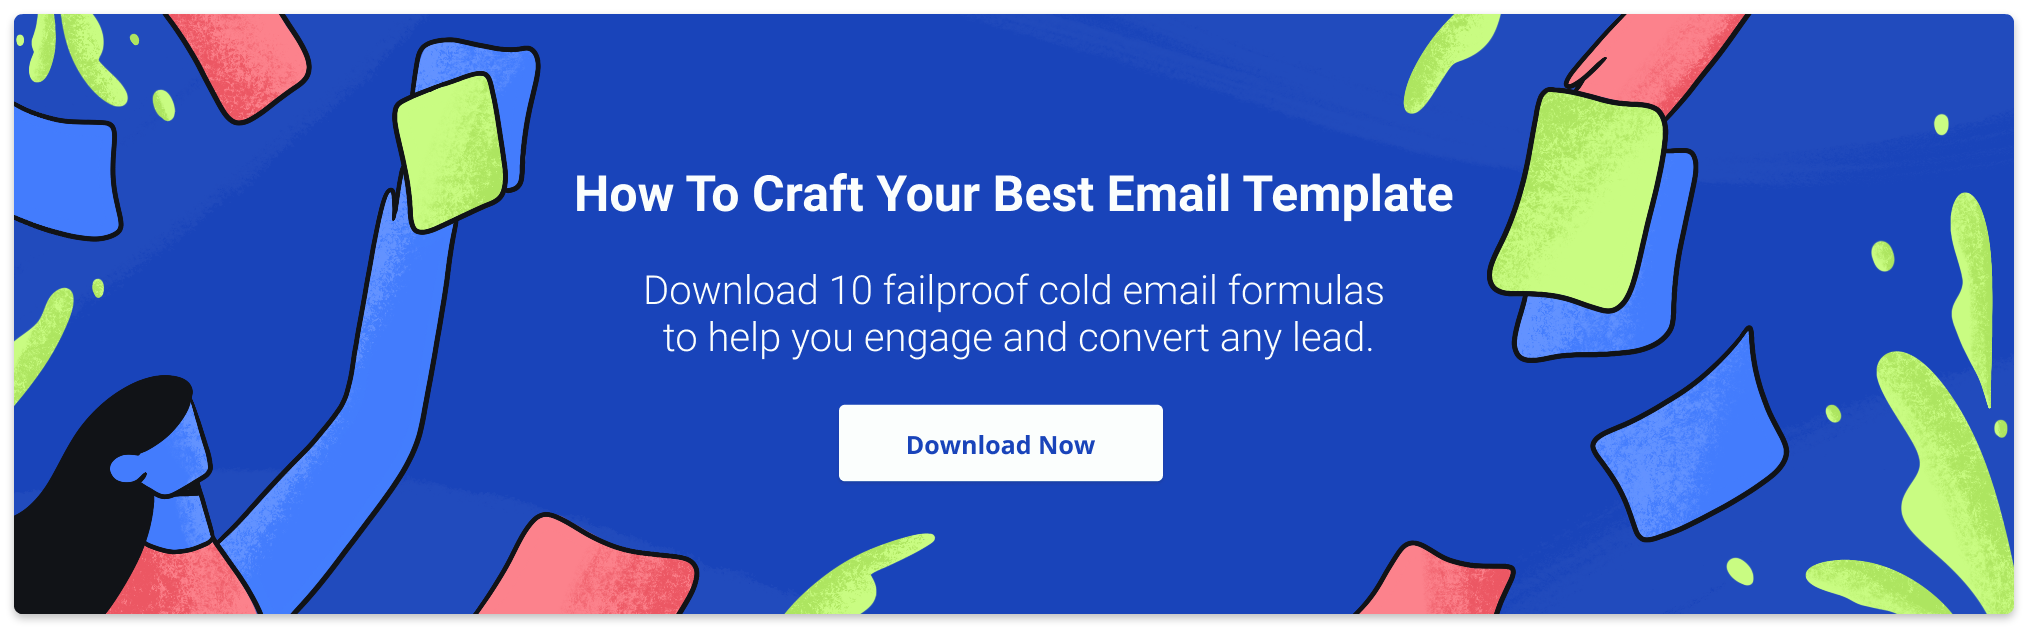 10 failproof cold email formulas